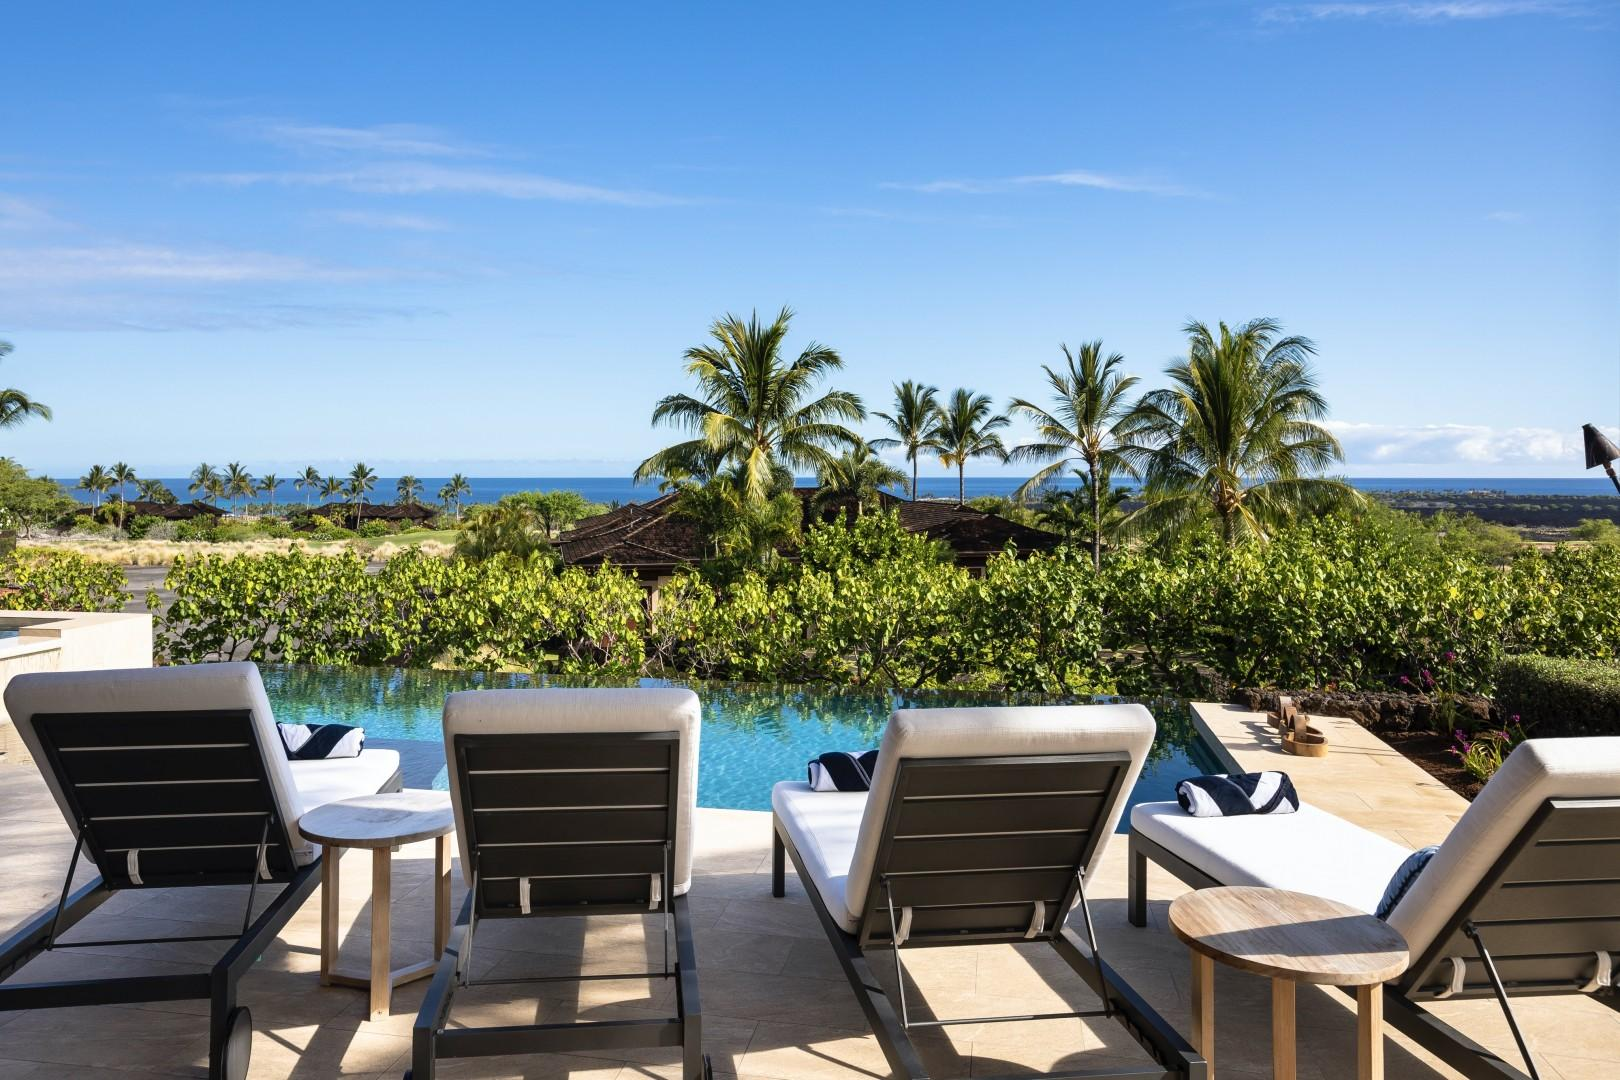 Poolside loungers offer endless relaxation opportunities.